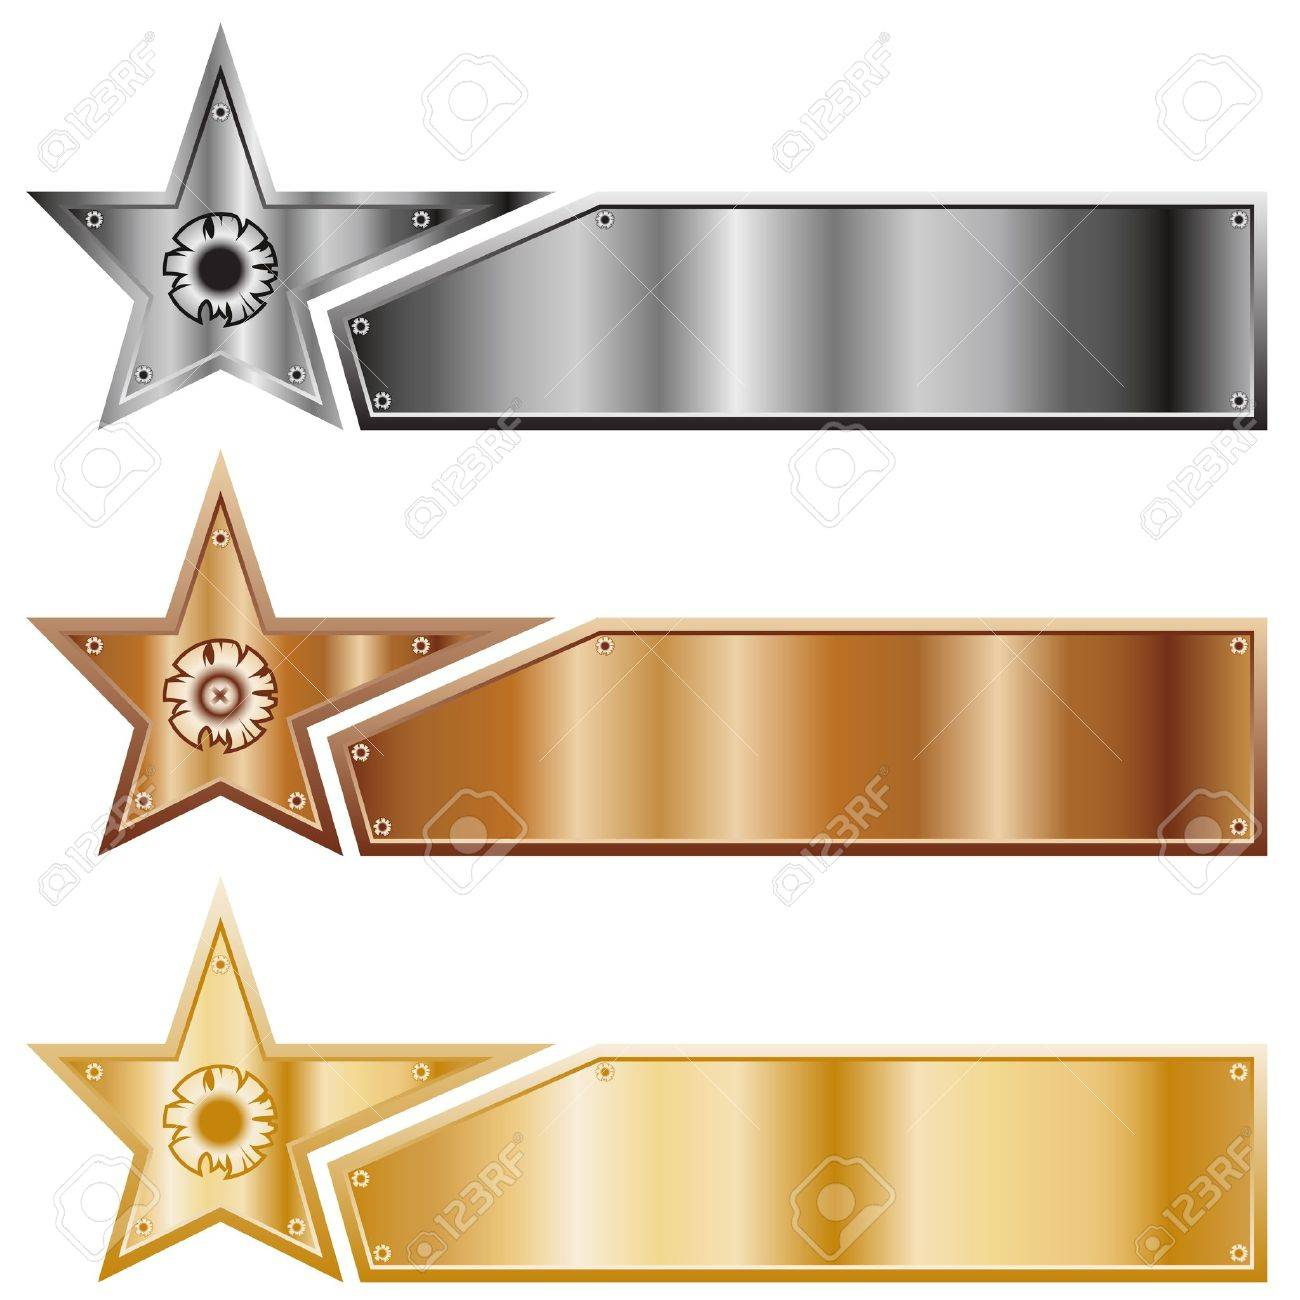 Metal stars. A set of banners of various types of metal. - 11650678